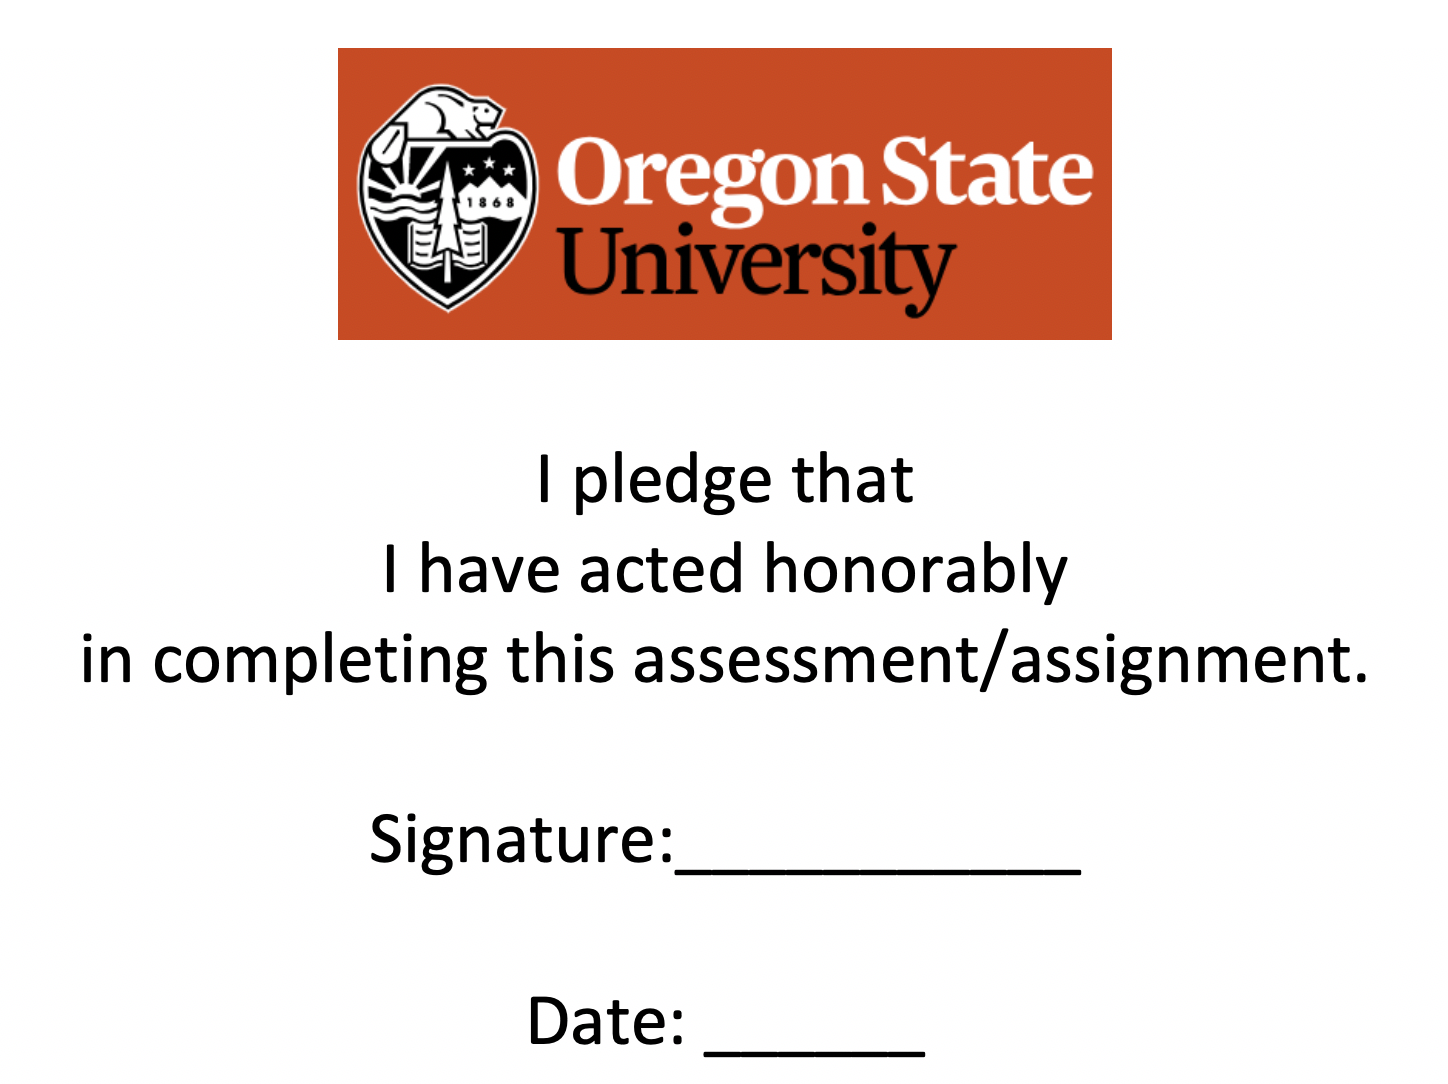 I pledge that I have acted honorably in completing this assessment.